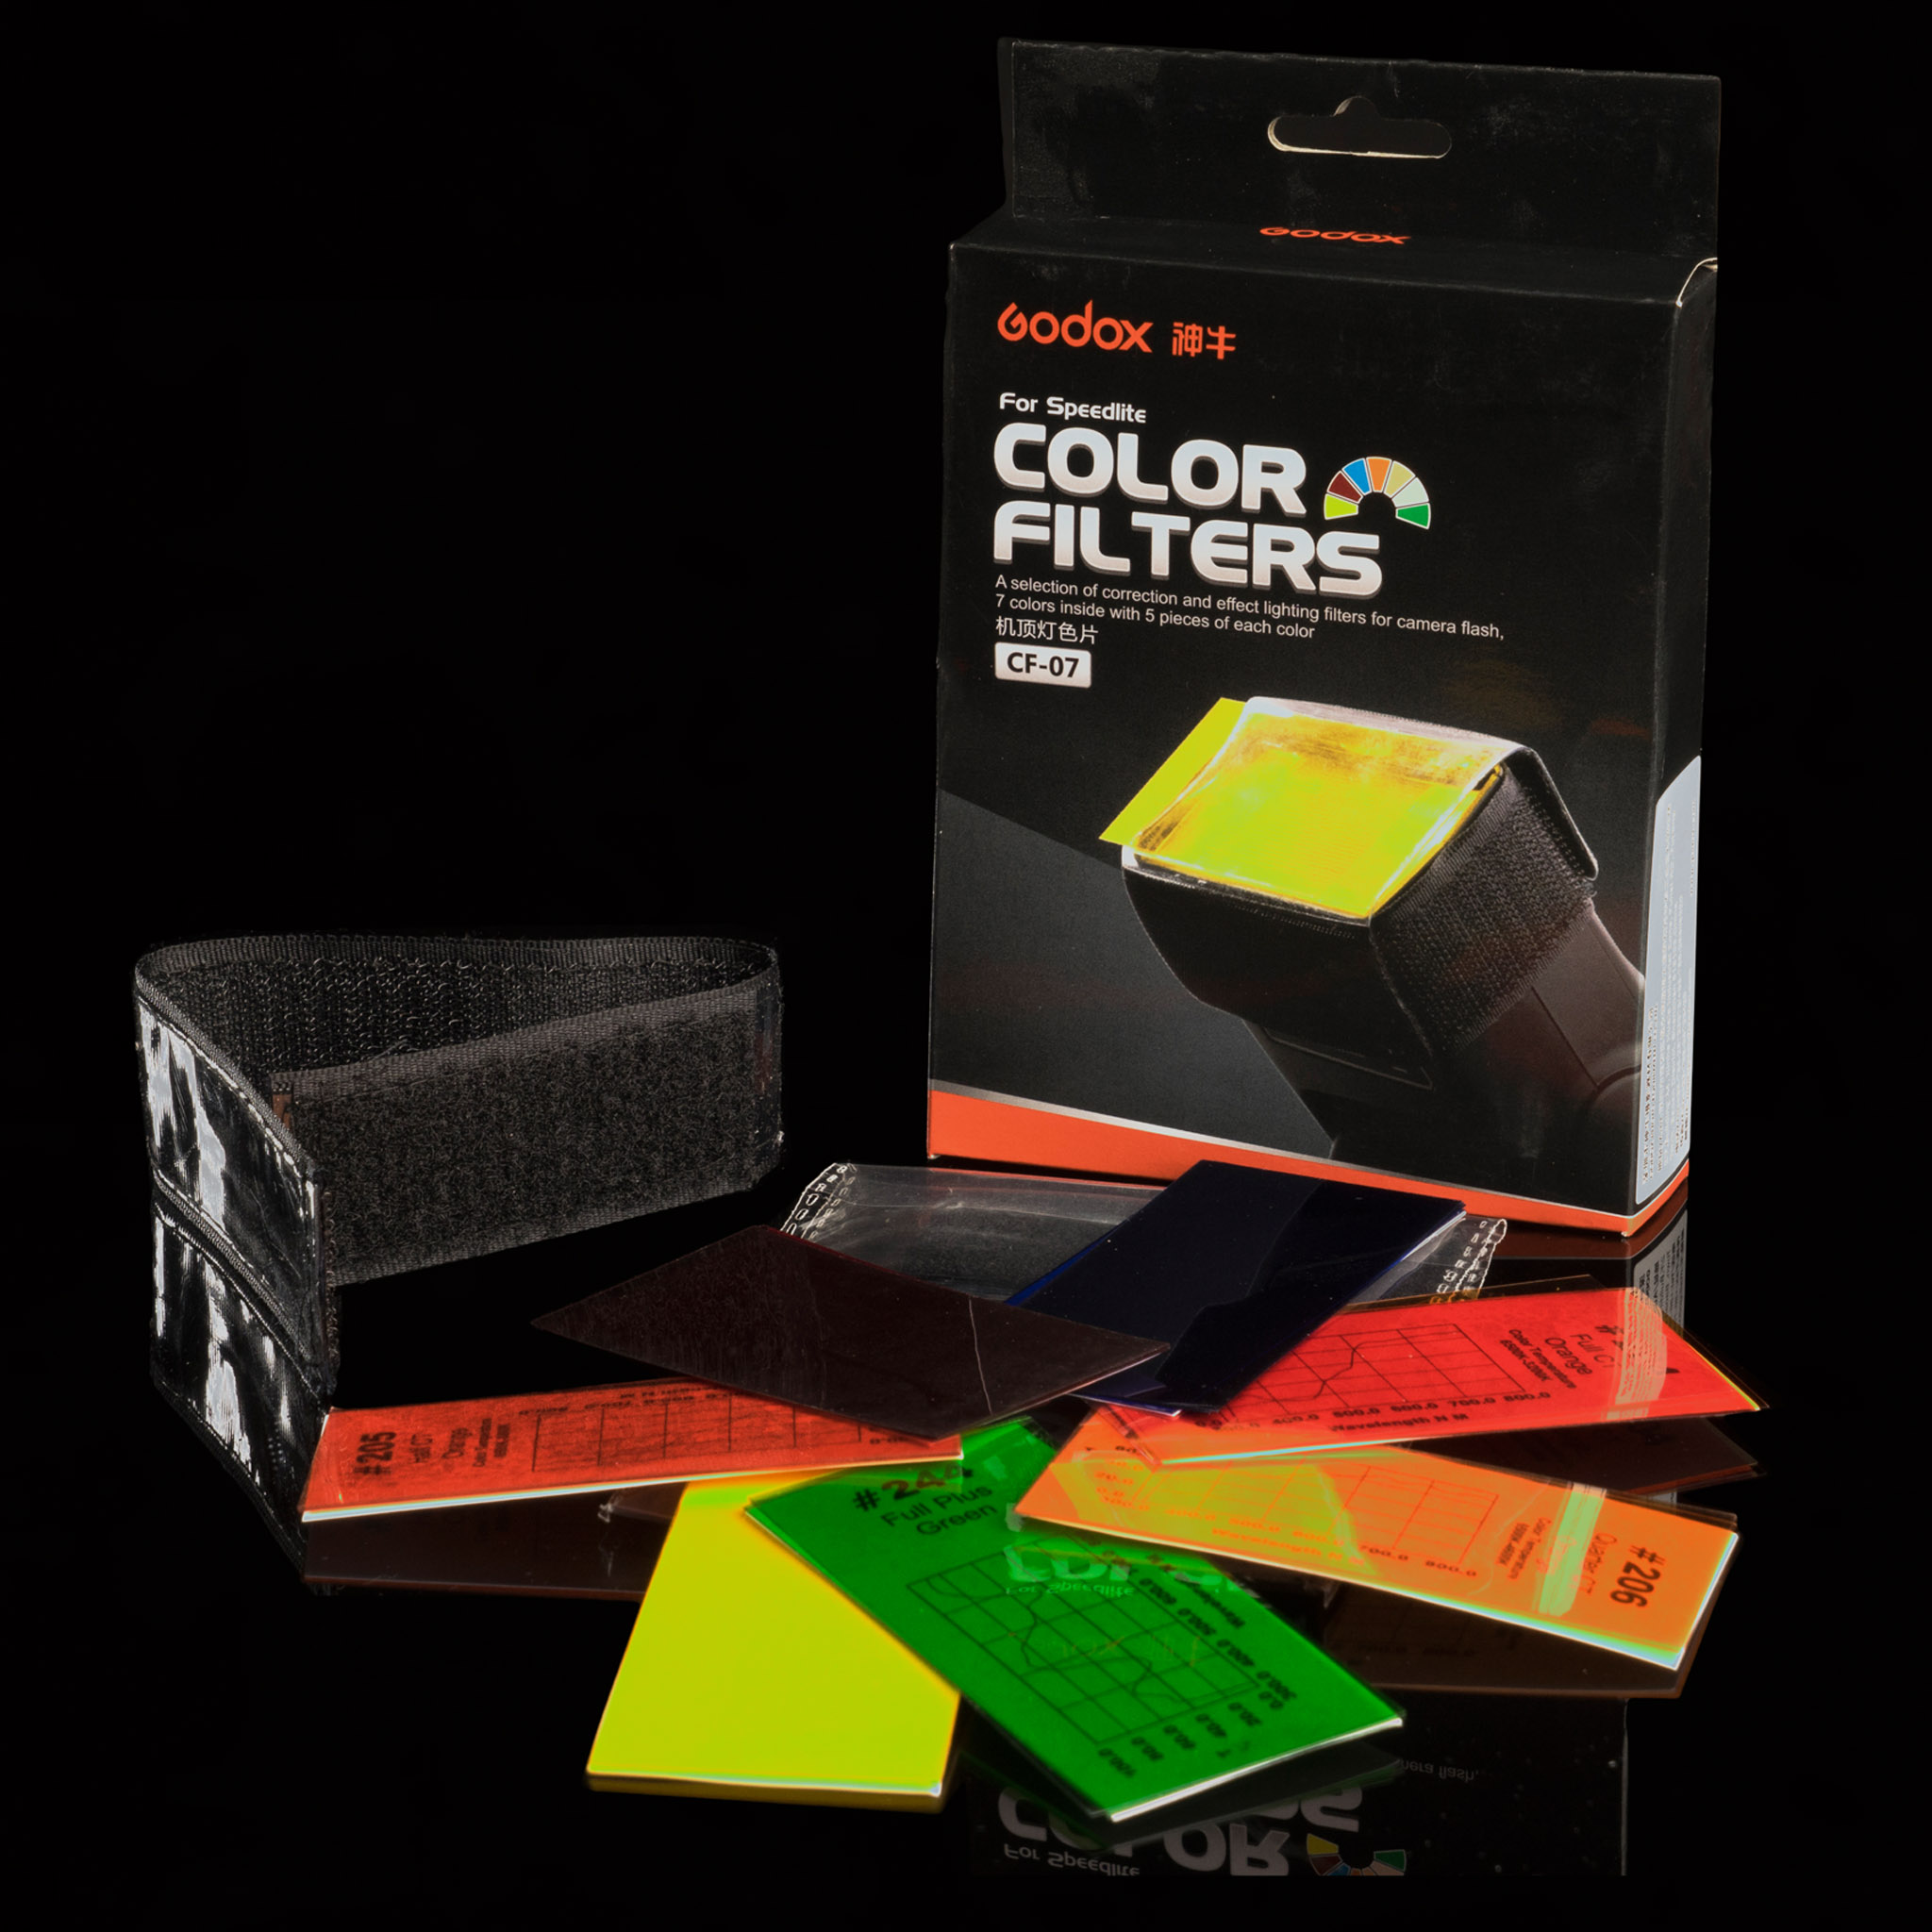 Kit de filtros de colores para flash